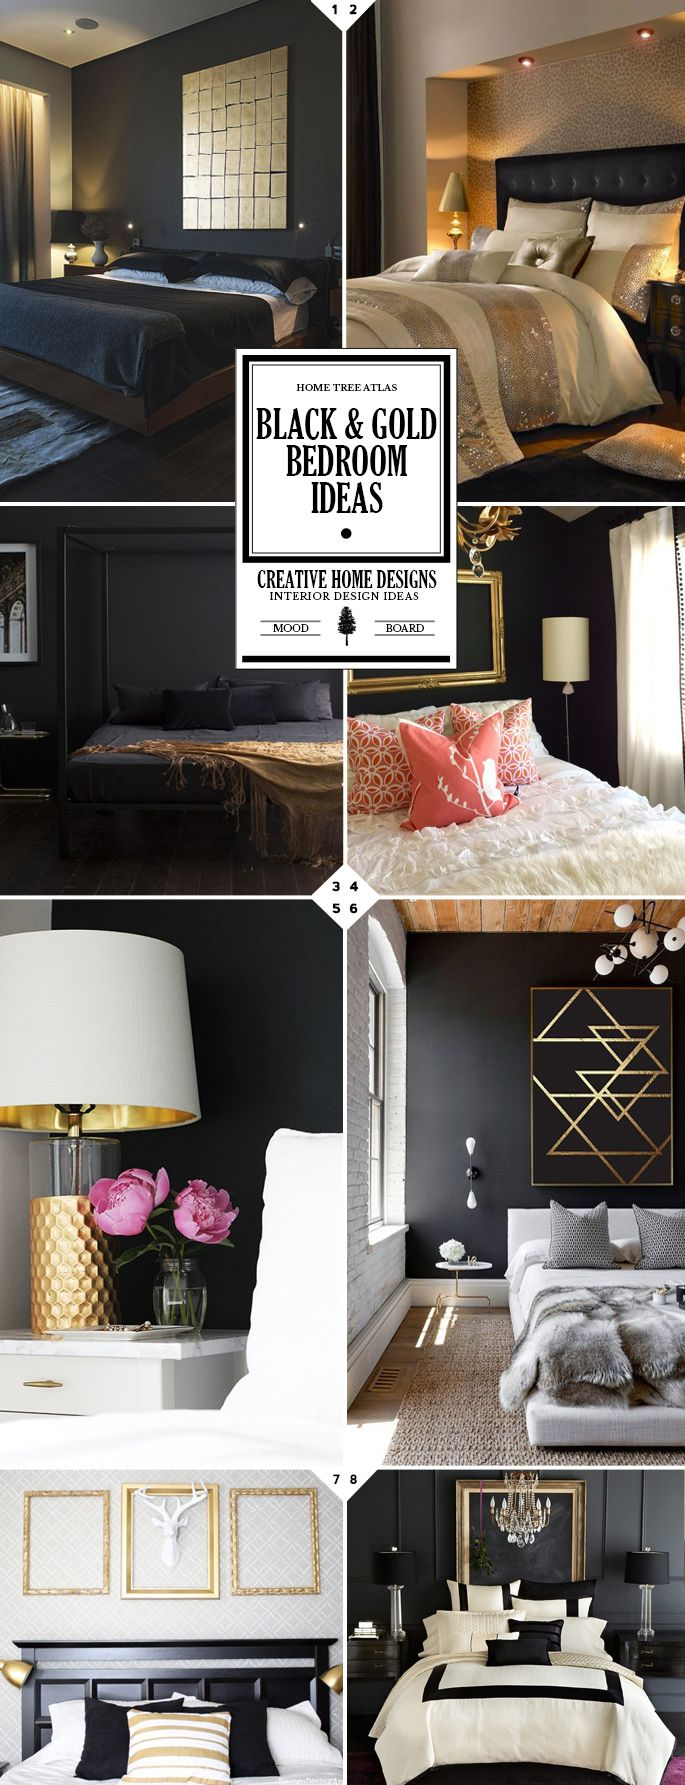 A touch of luxury, black and gold bedroom ideas More